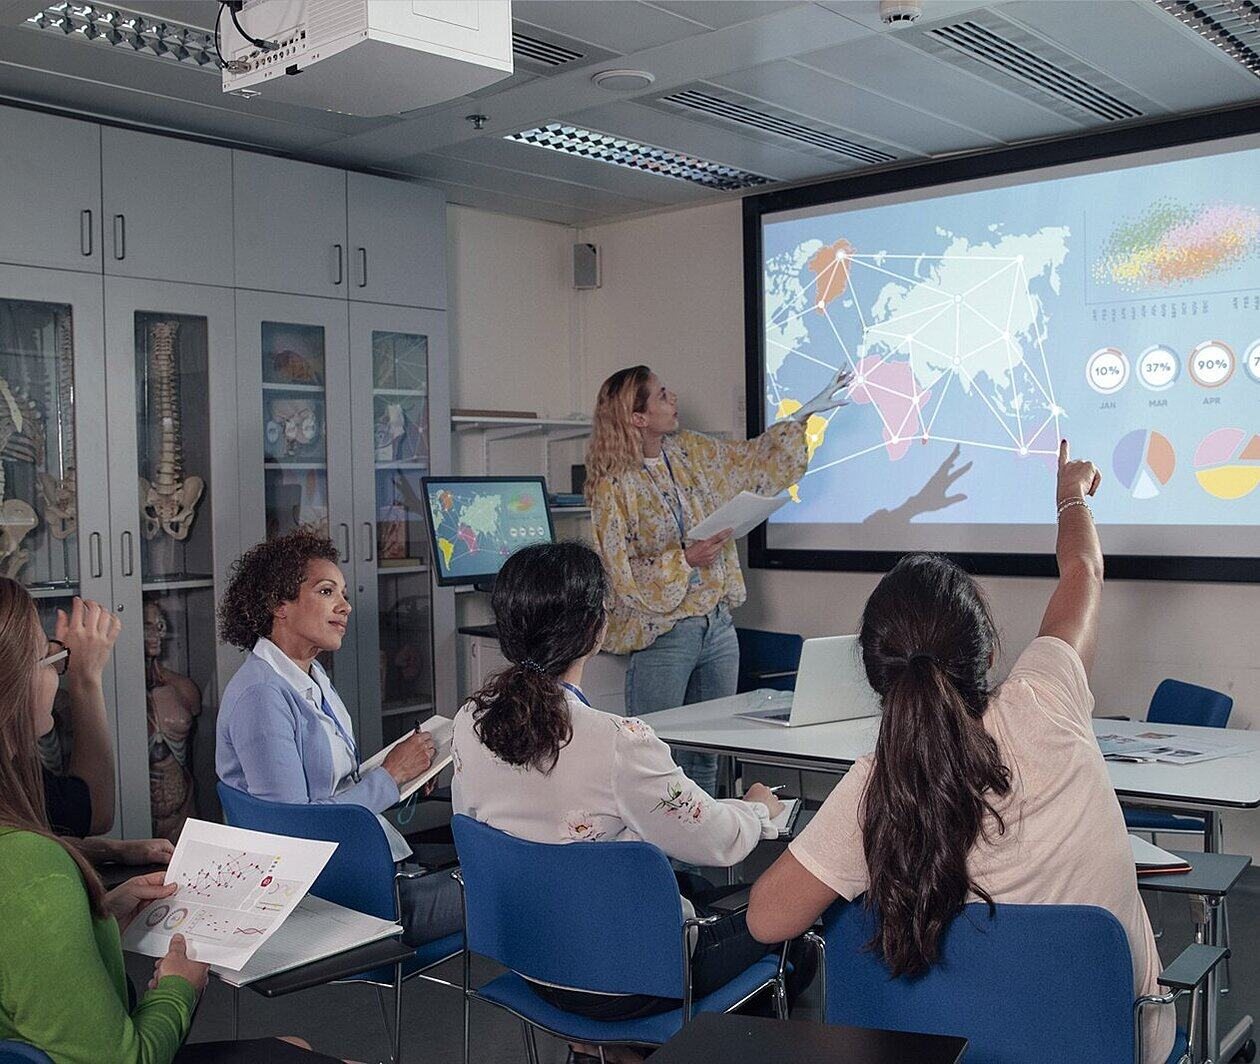 Getting Started with Teaching Data Science in Schools